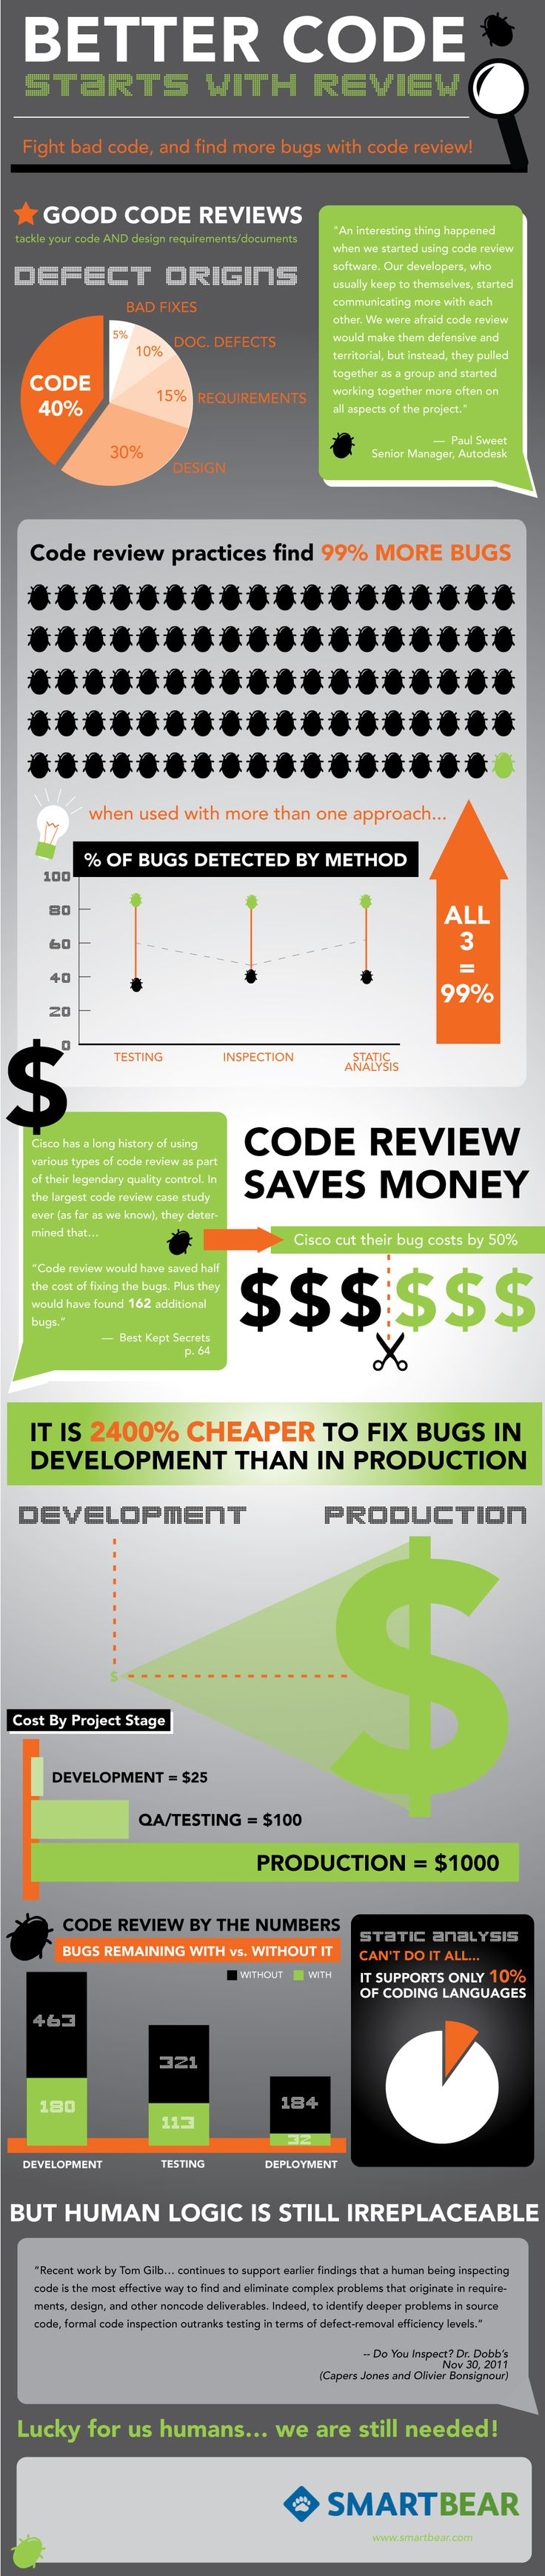 Why Code Reviews are such a great